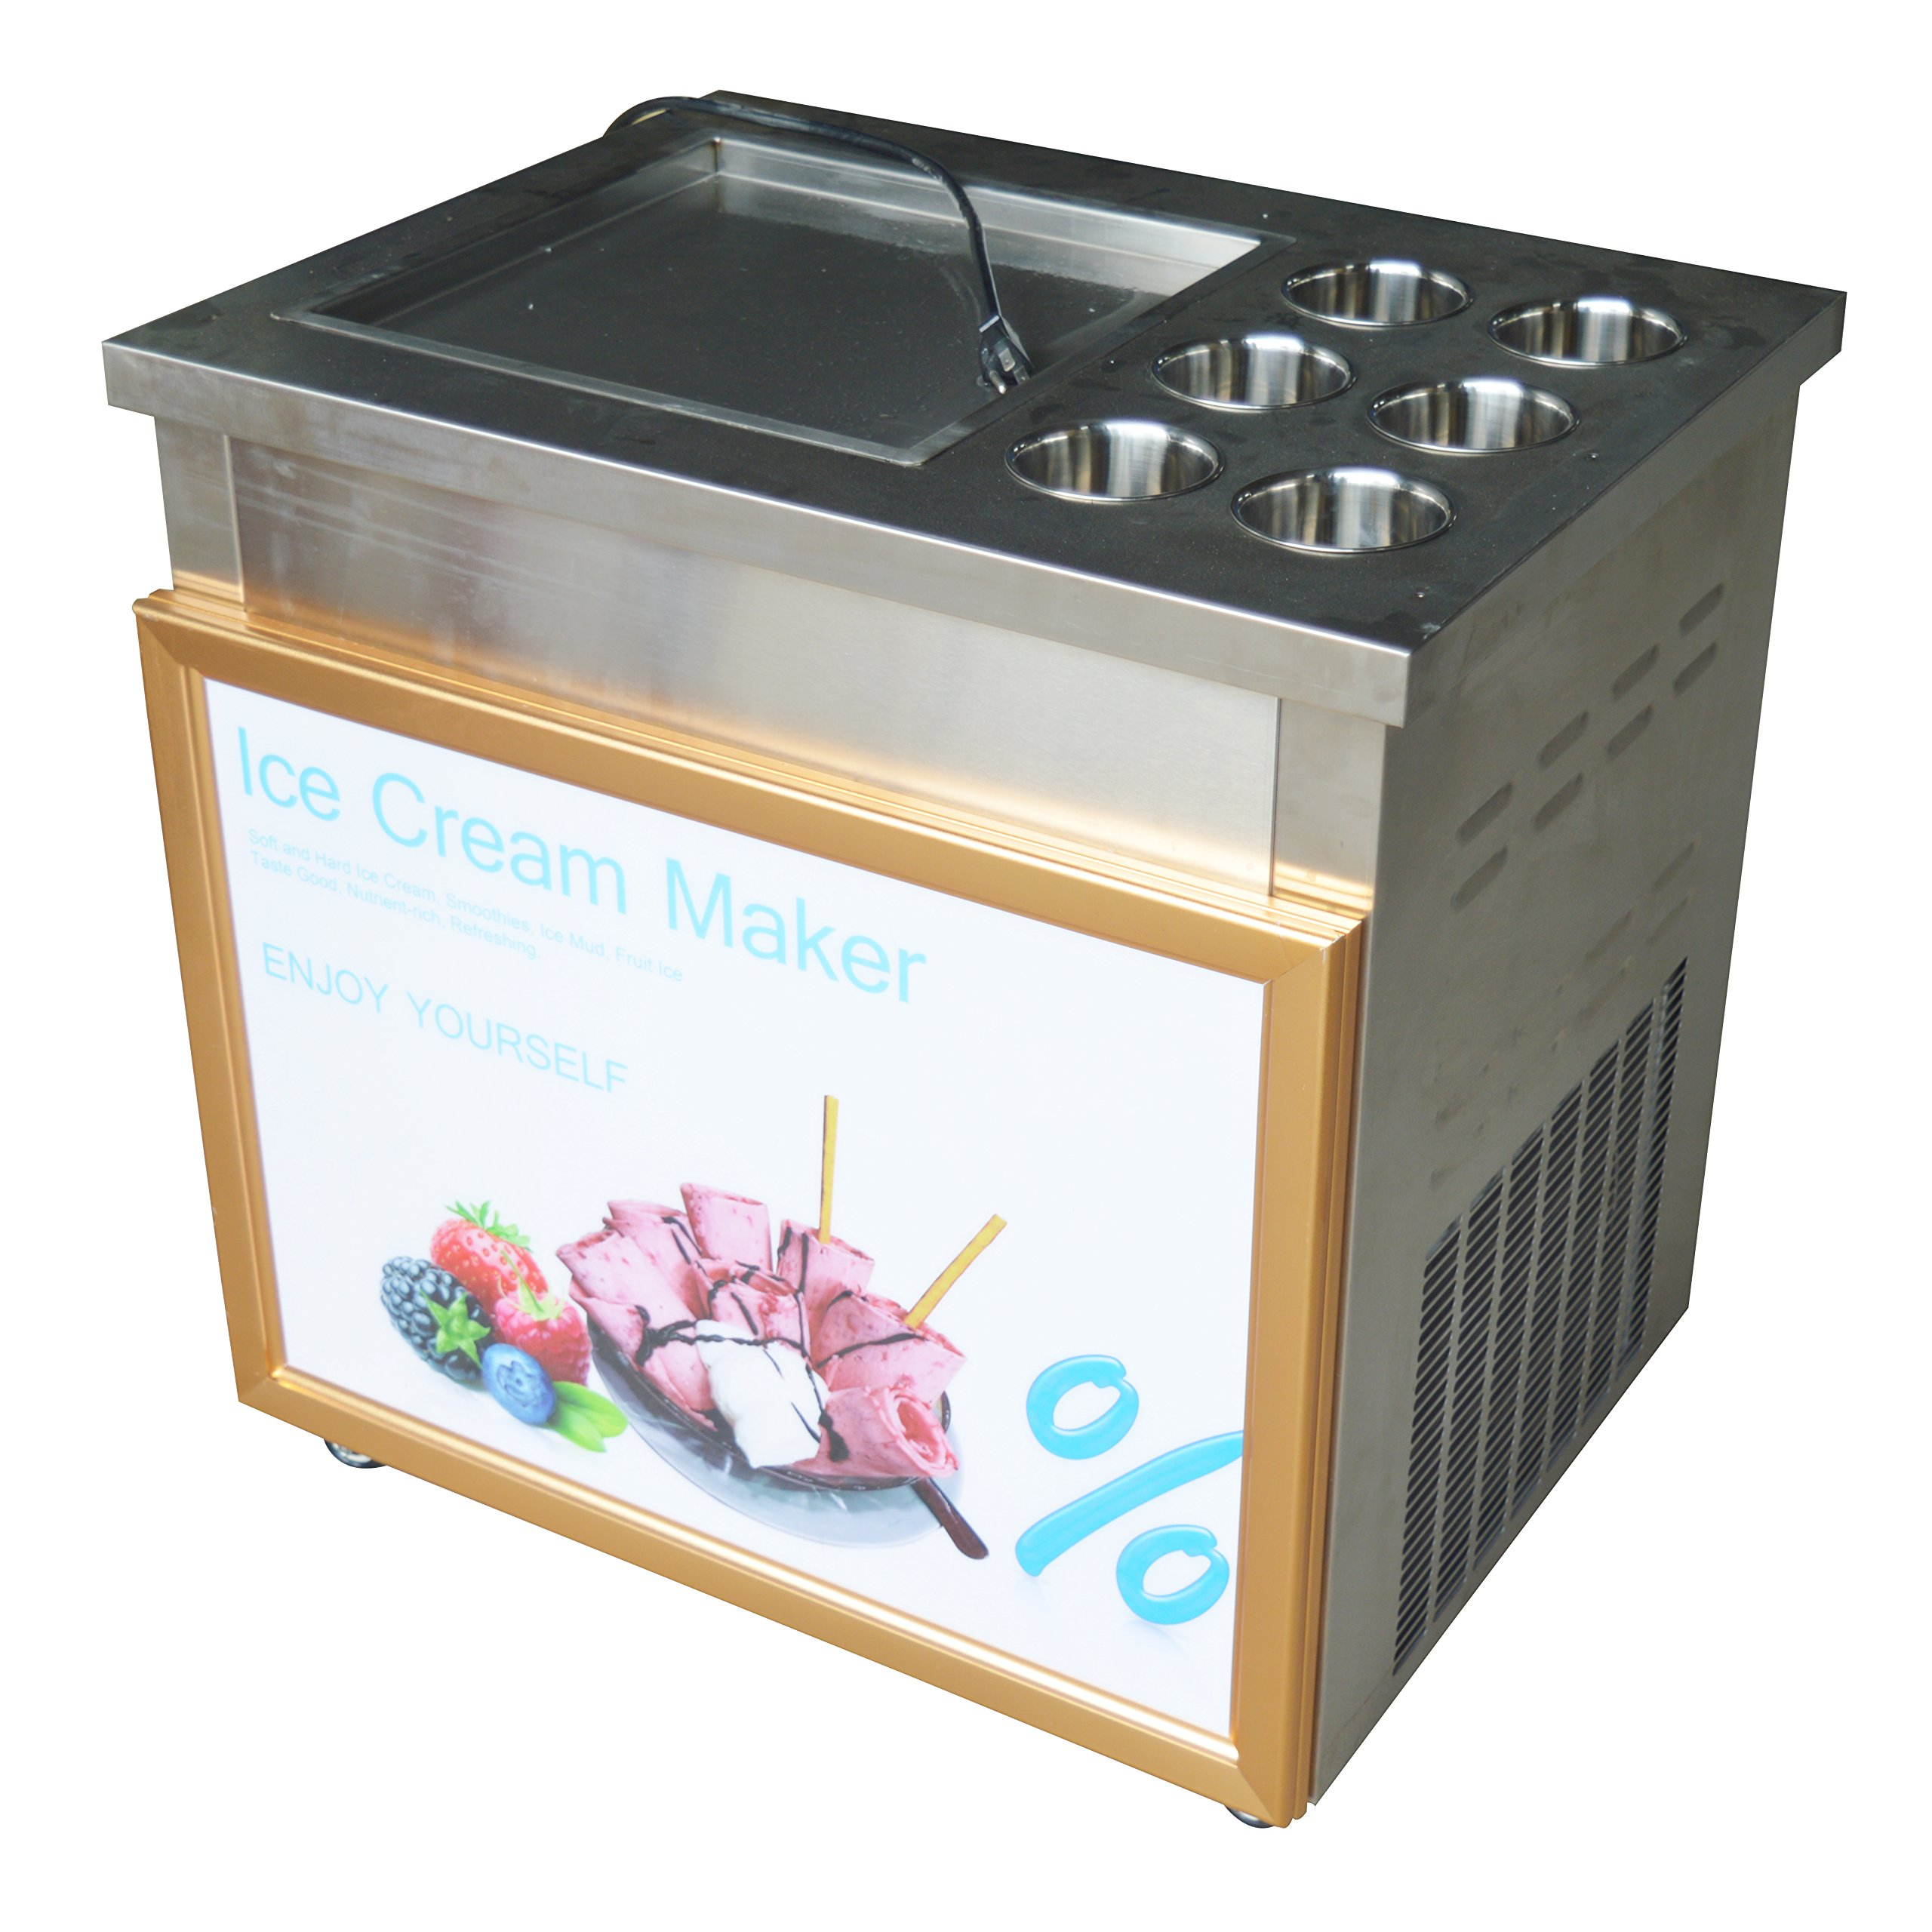 Ice Cream Maker Fried Ice Cream Machine 110V With Dust cover